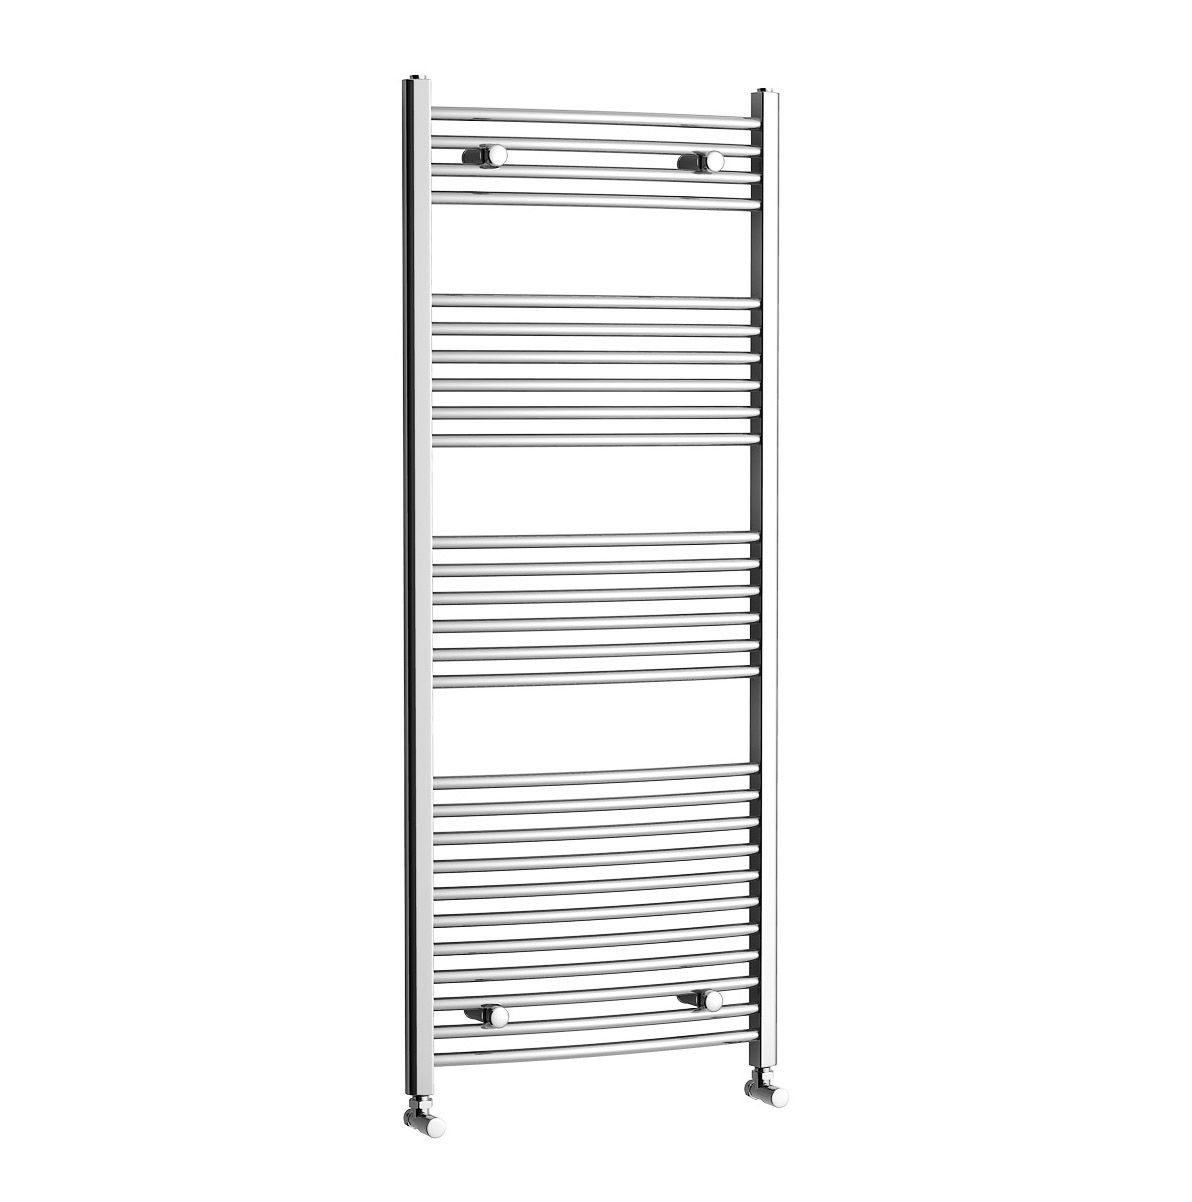 1150x450mm Chrome Curved Rail Ladder Towel Radiator - Natasha